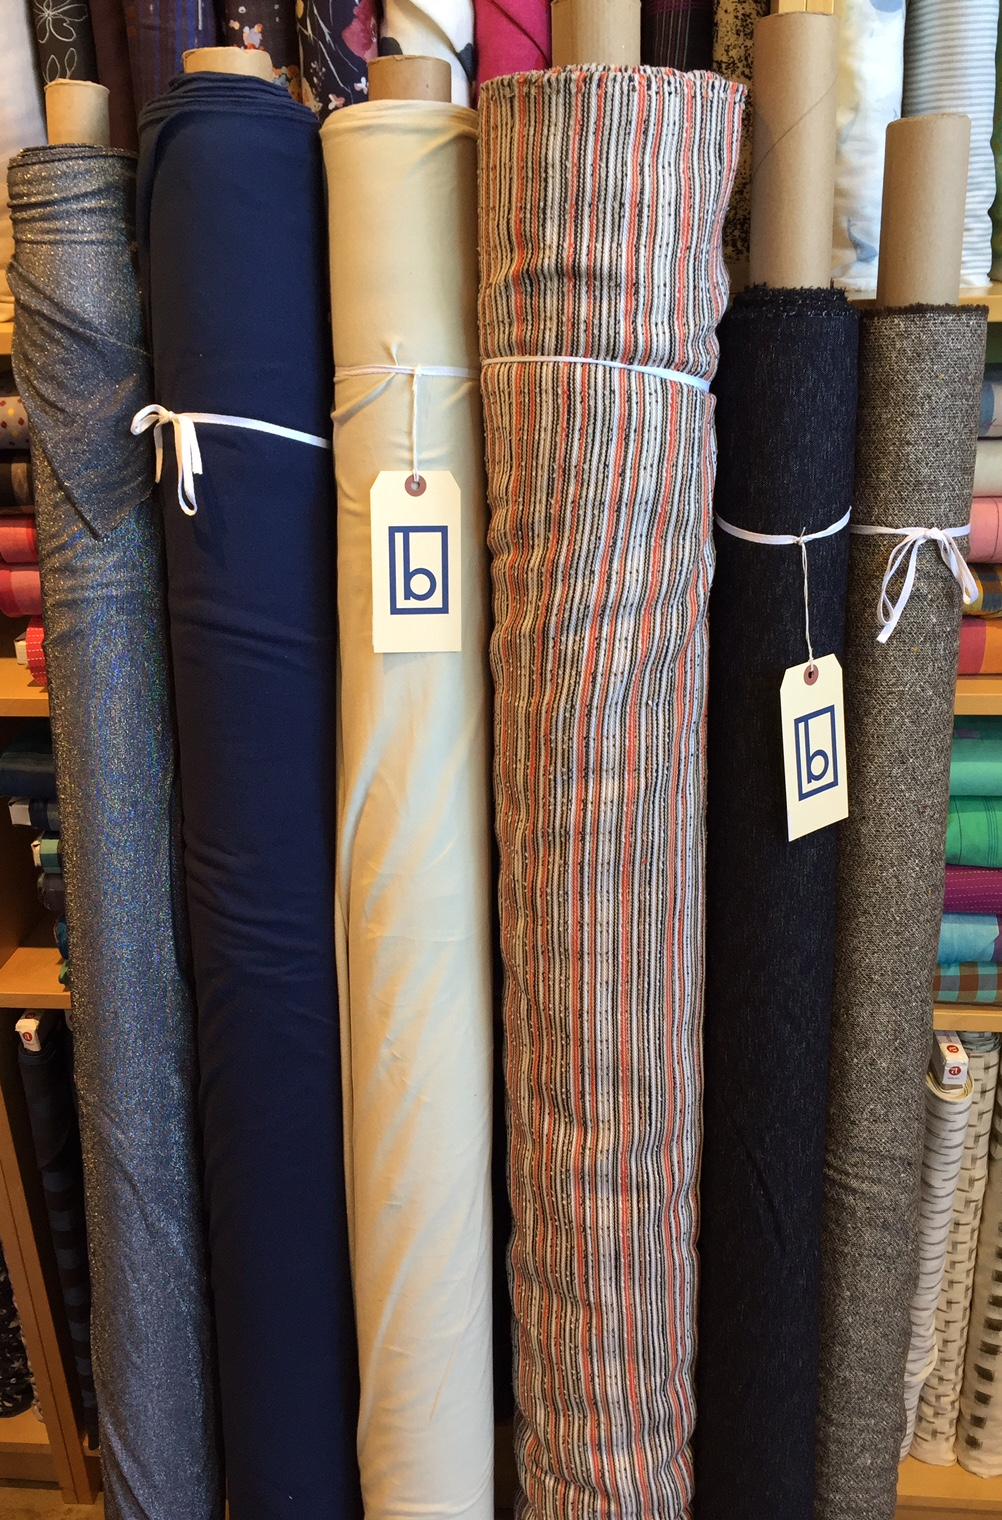 (L to R): Metallic knit, two low loop cotton terry knits with incredible drape and stretch, cotton woven stripe, two wools.